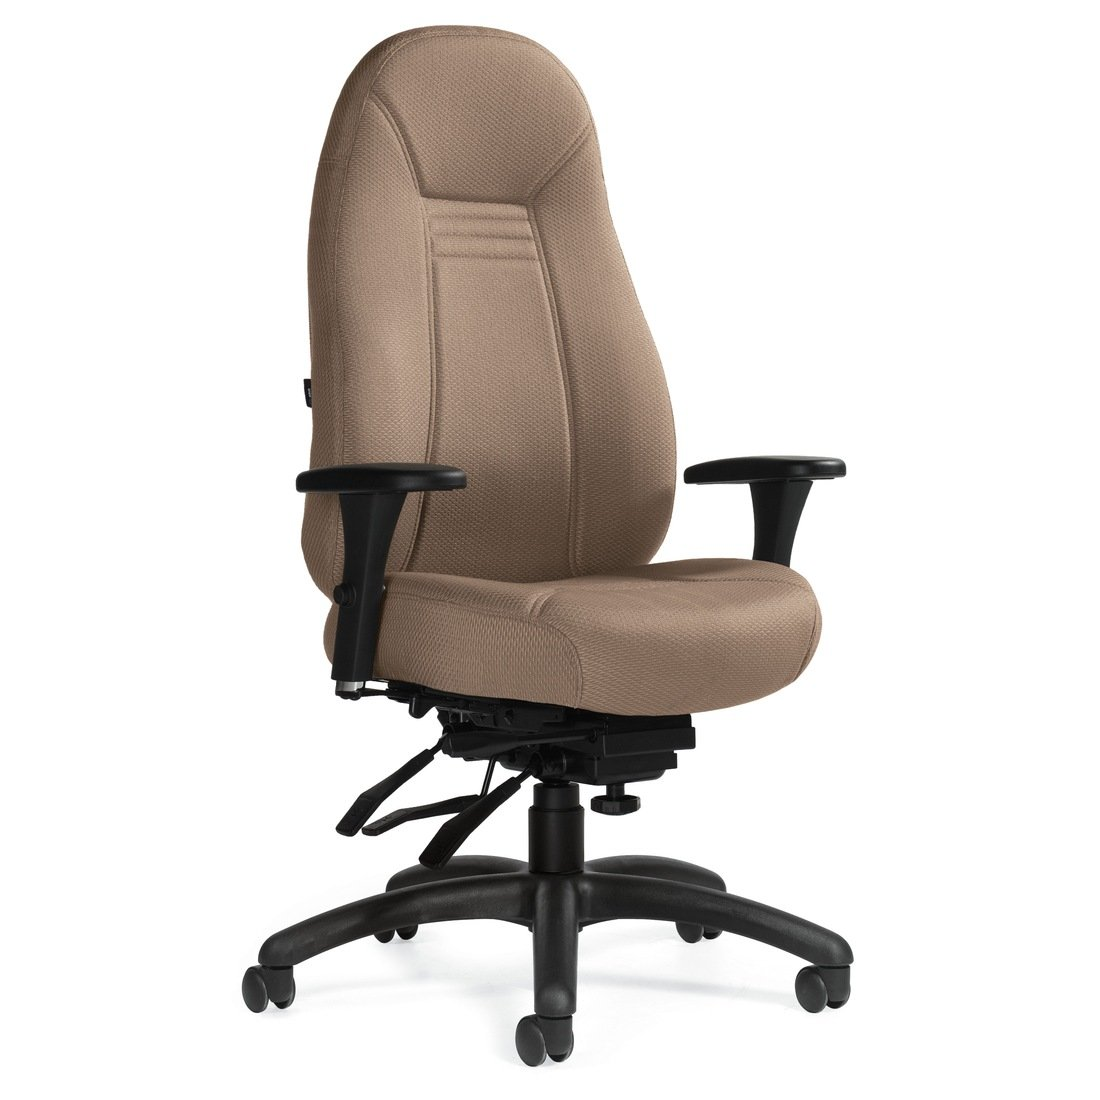 Obusforme Comfort high back multi-tilter chair, model 1240-3. This chair has been placed on a white background.